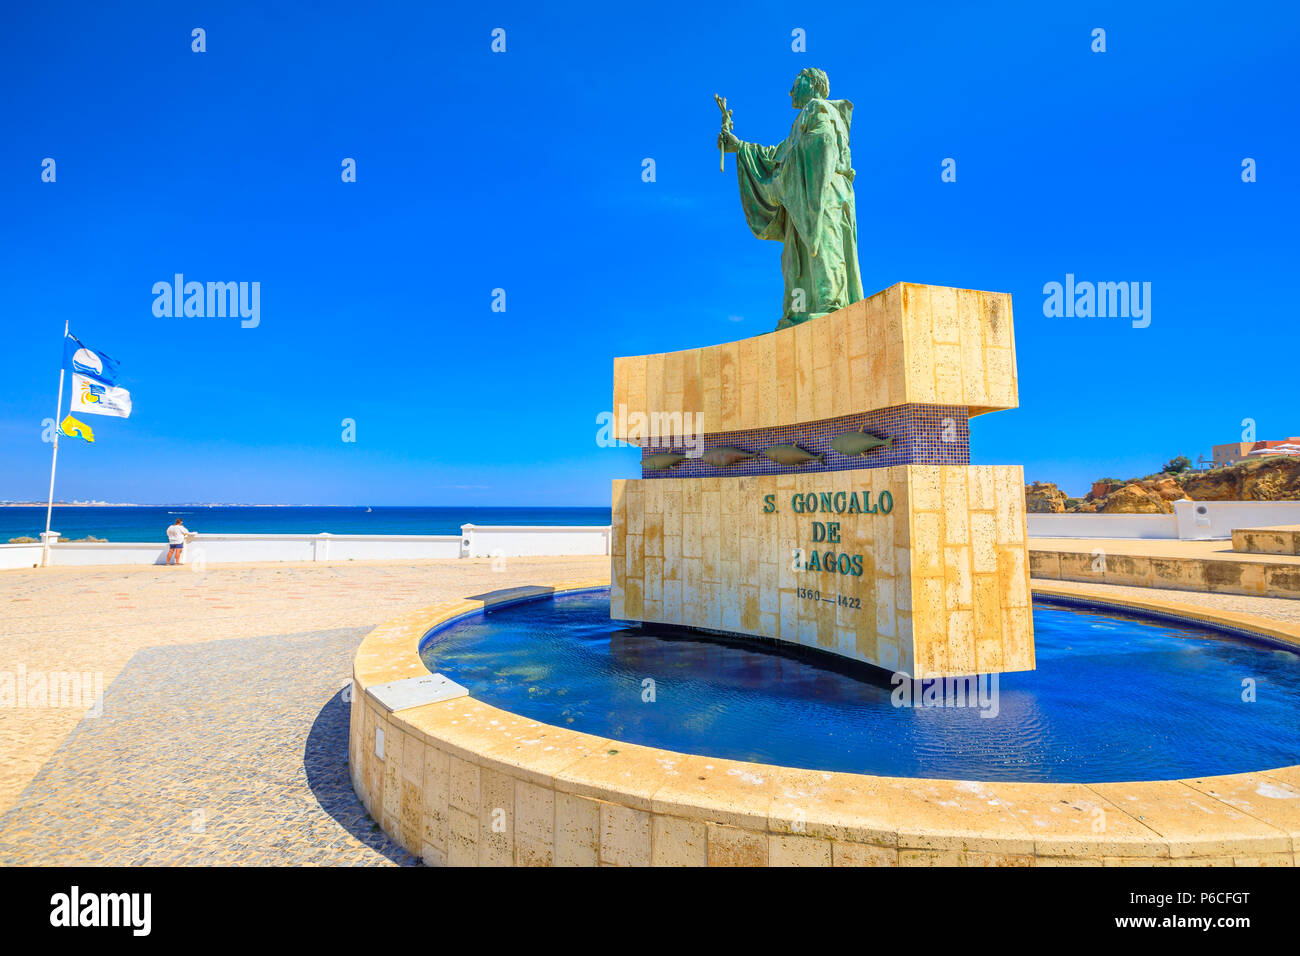 Lagos, Portugal - August 19, 2017: statue of Sao Goncalo de Lagos, a Portuguese saint, revered above all by the Algarve's fishermen for protection while at sea.Lagos near Batata Beach in Algarve Coast - Stock Image